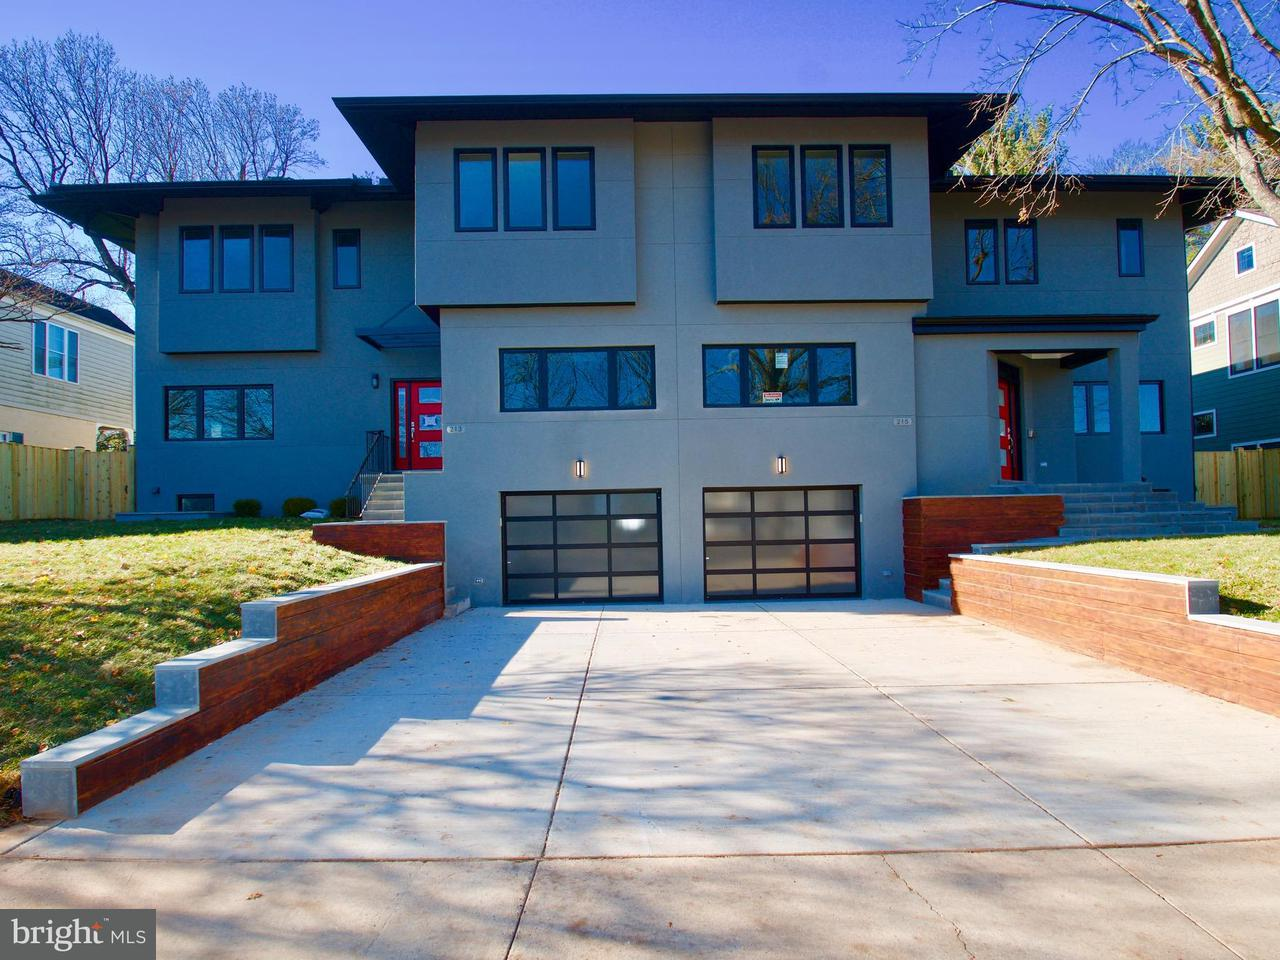 Single Family Home for Sale at 213 W GREENWAY BLVD 213 W GREENWAY BLVD Falls Church, Virginia 22046 United States